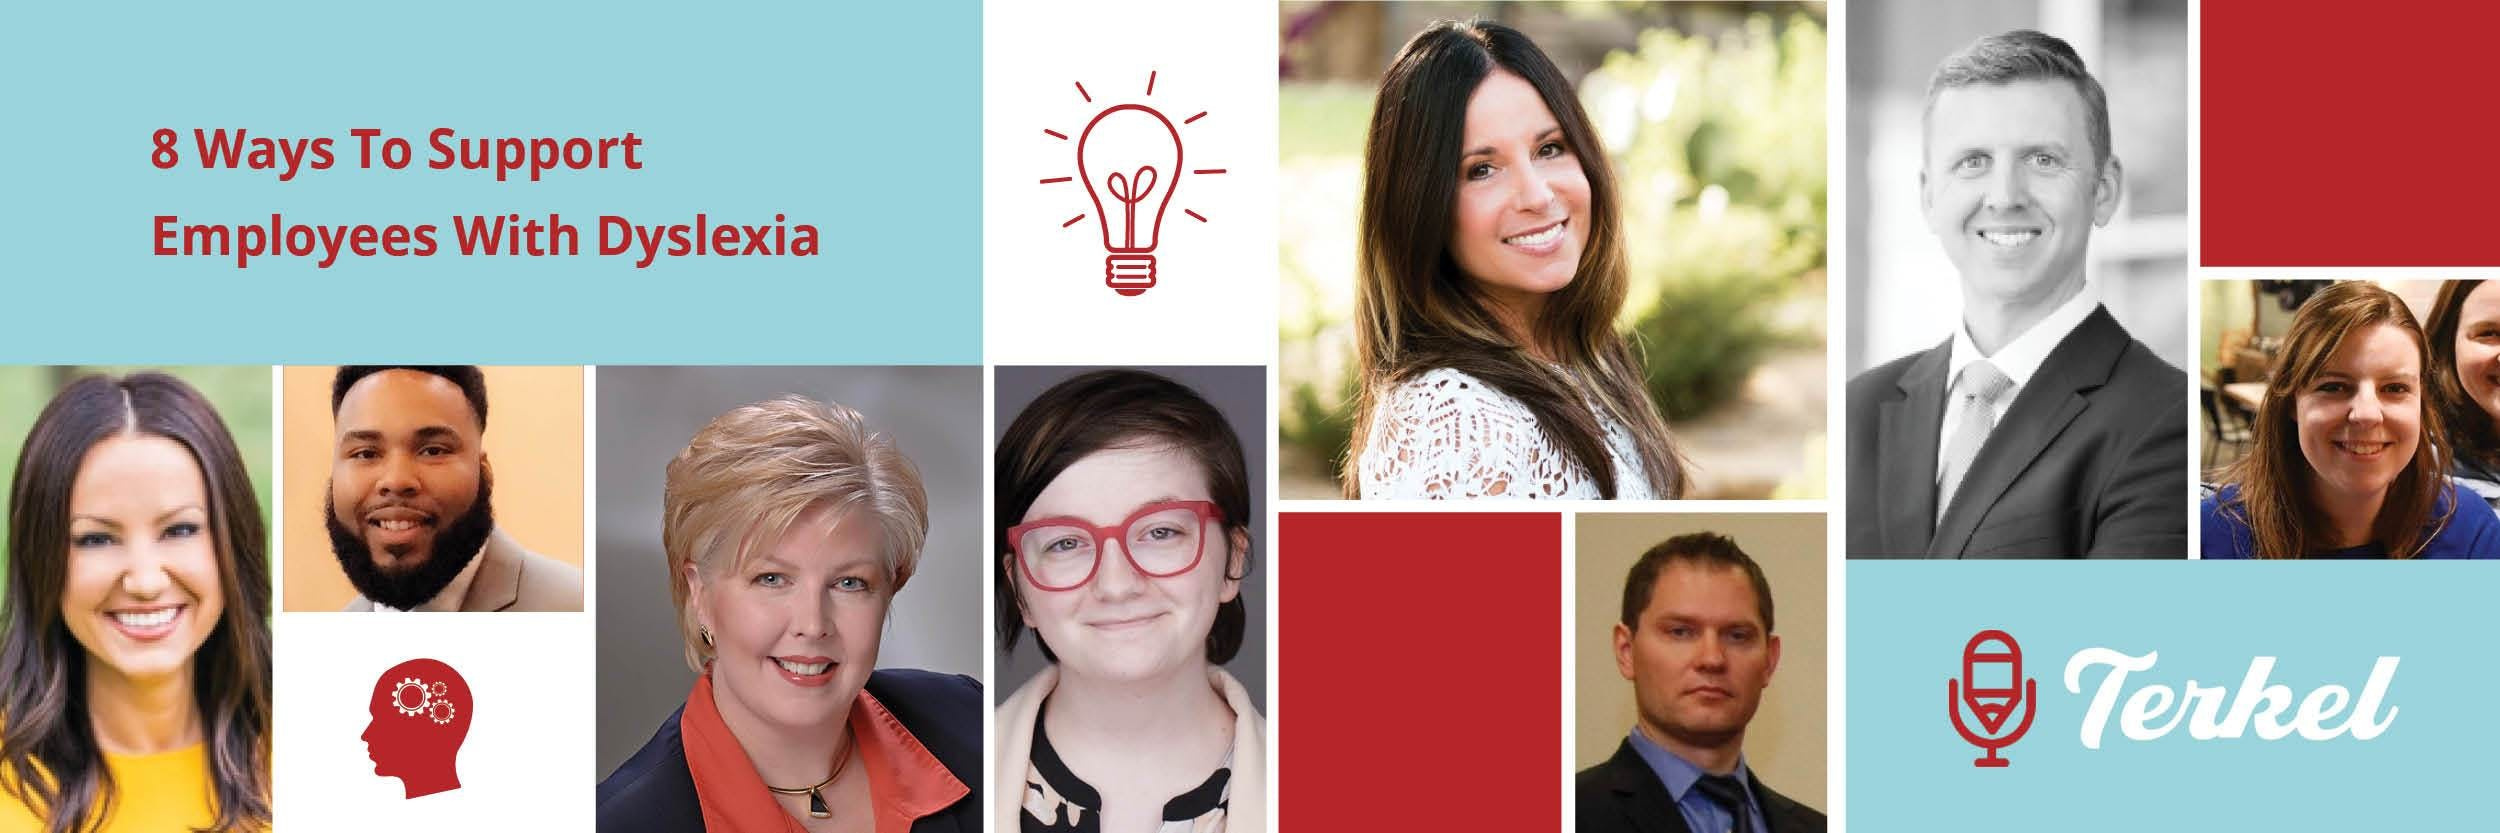 Profile photos of the 8 thought leaders with title '8 ways to support employees with Dyslexia'